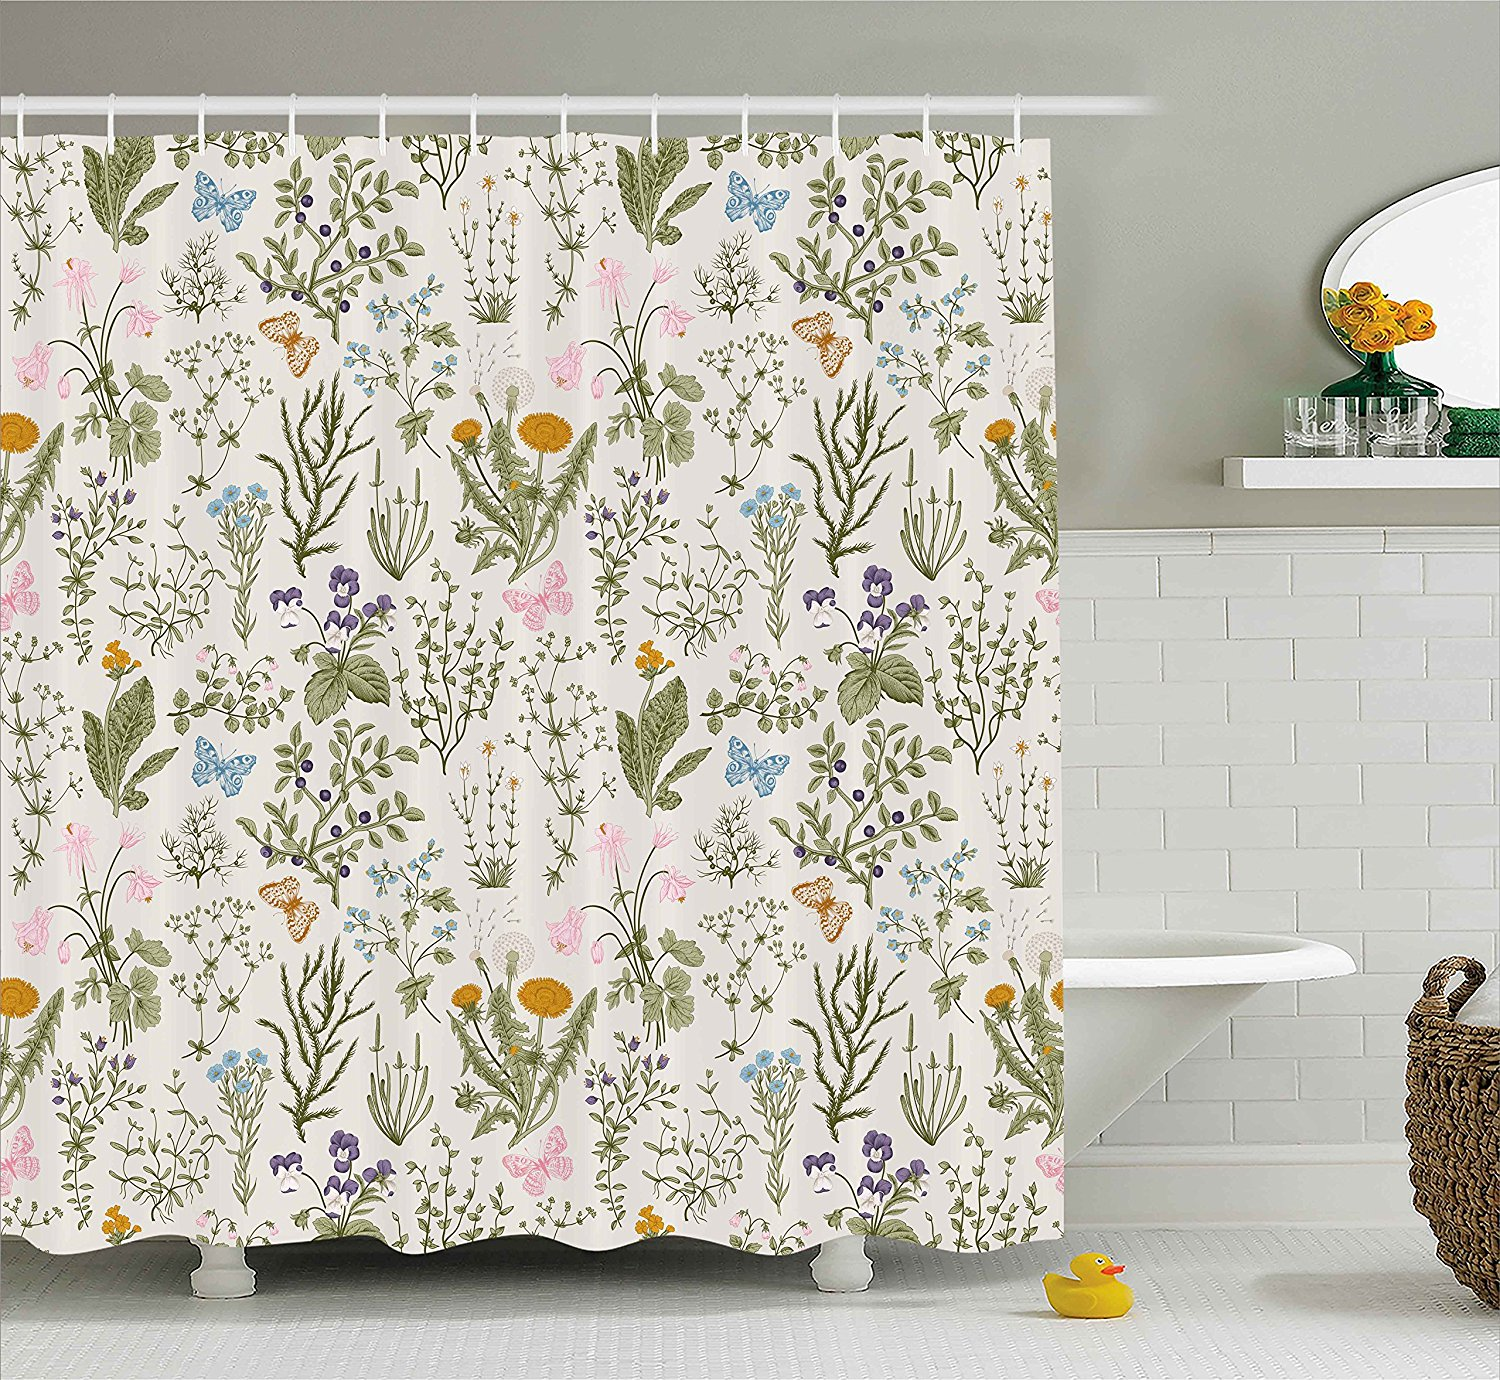 Floral Shower Curtain Vintage Garden Plants With Herbs